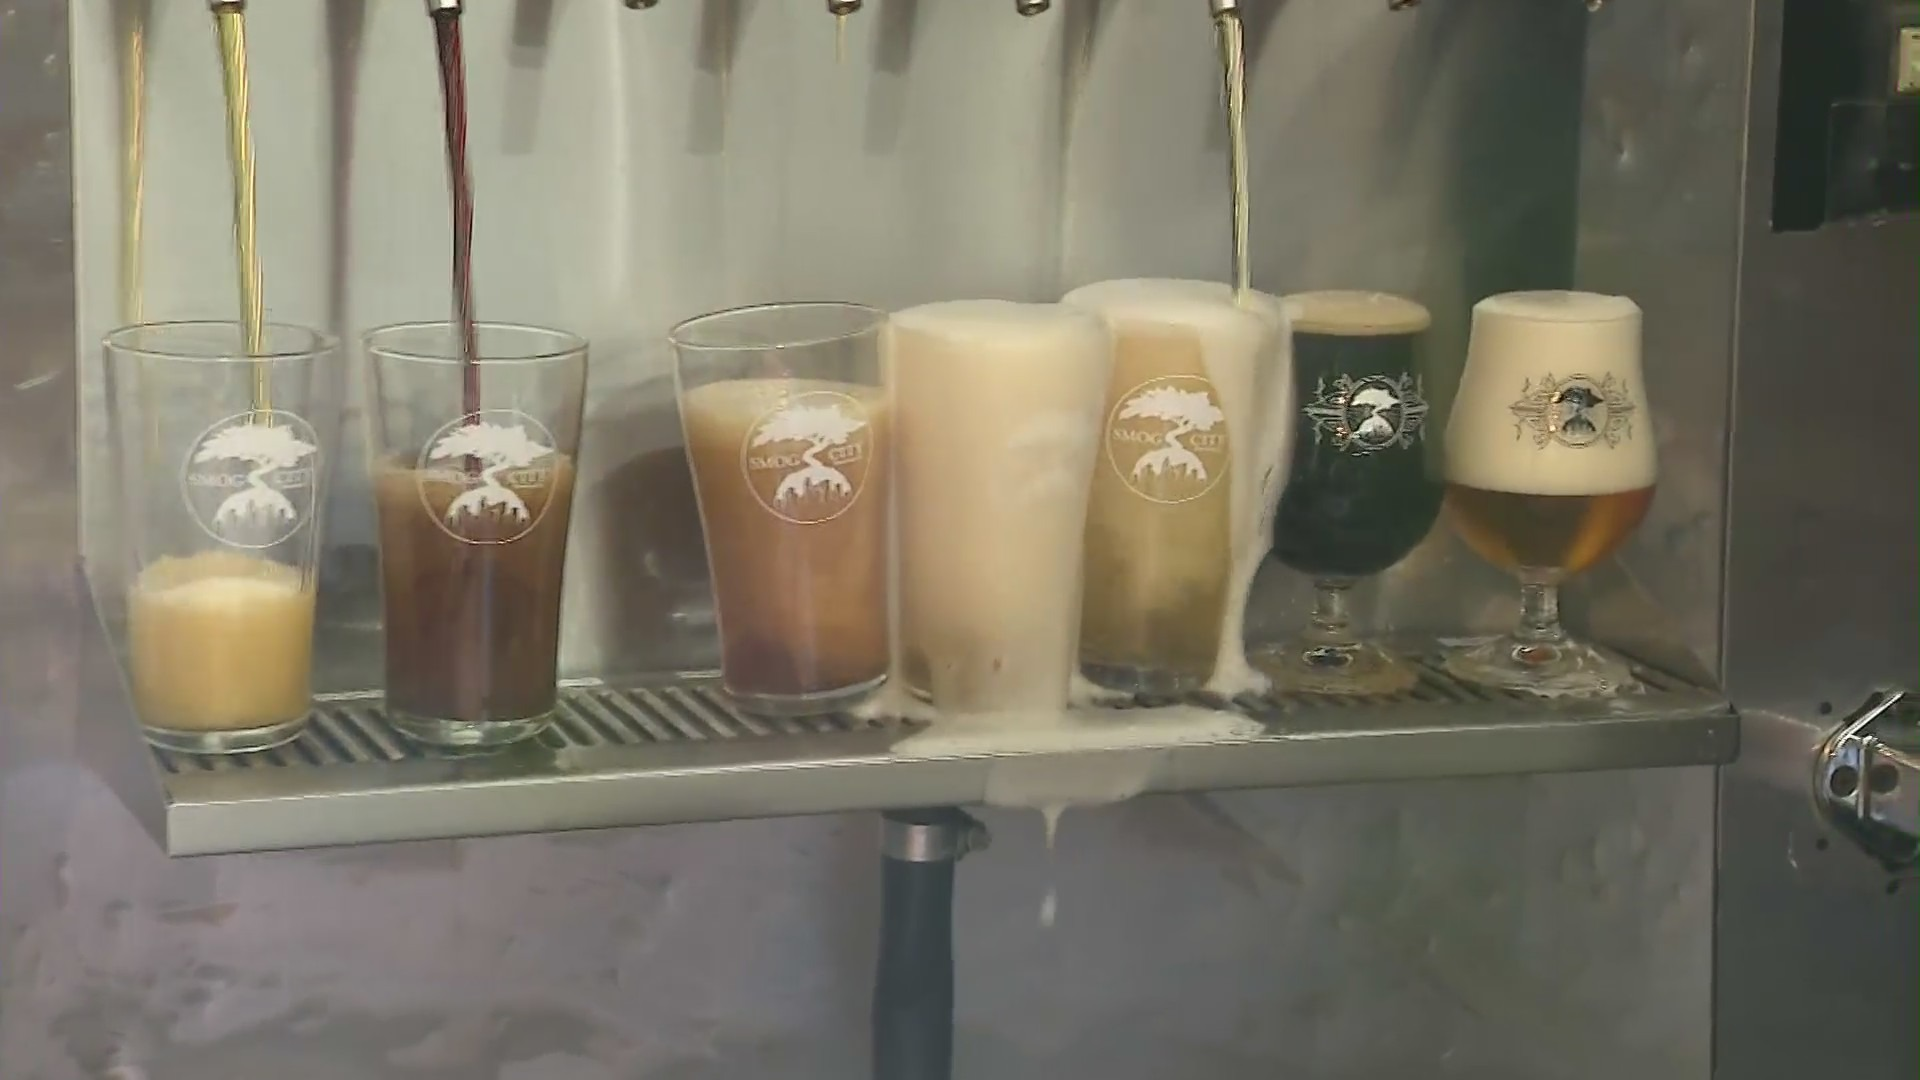 KTLA's Wendy Burch visited Smog City brewery in Torrance for Father's Day gift ideas on June 12, 2021.